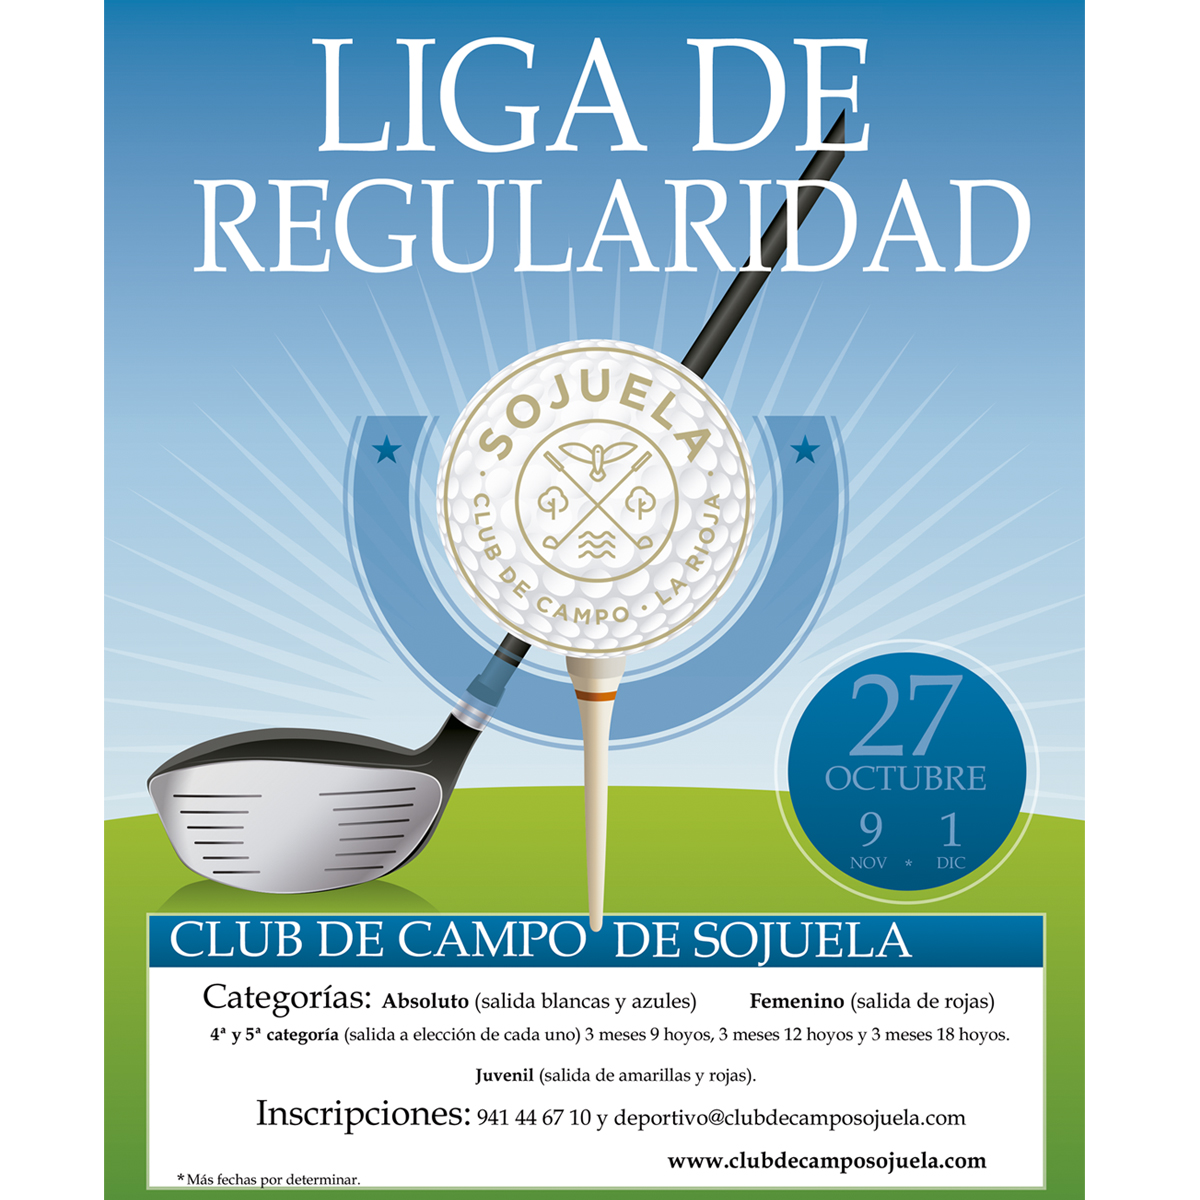 Liga de Regularidad 2019/2020 – Club de Golf Sojuela